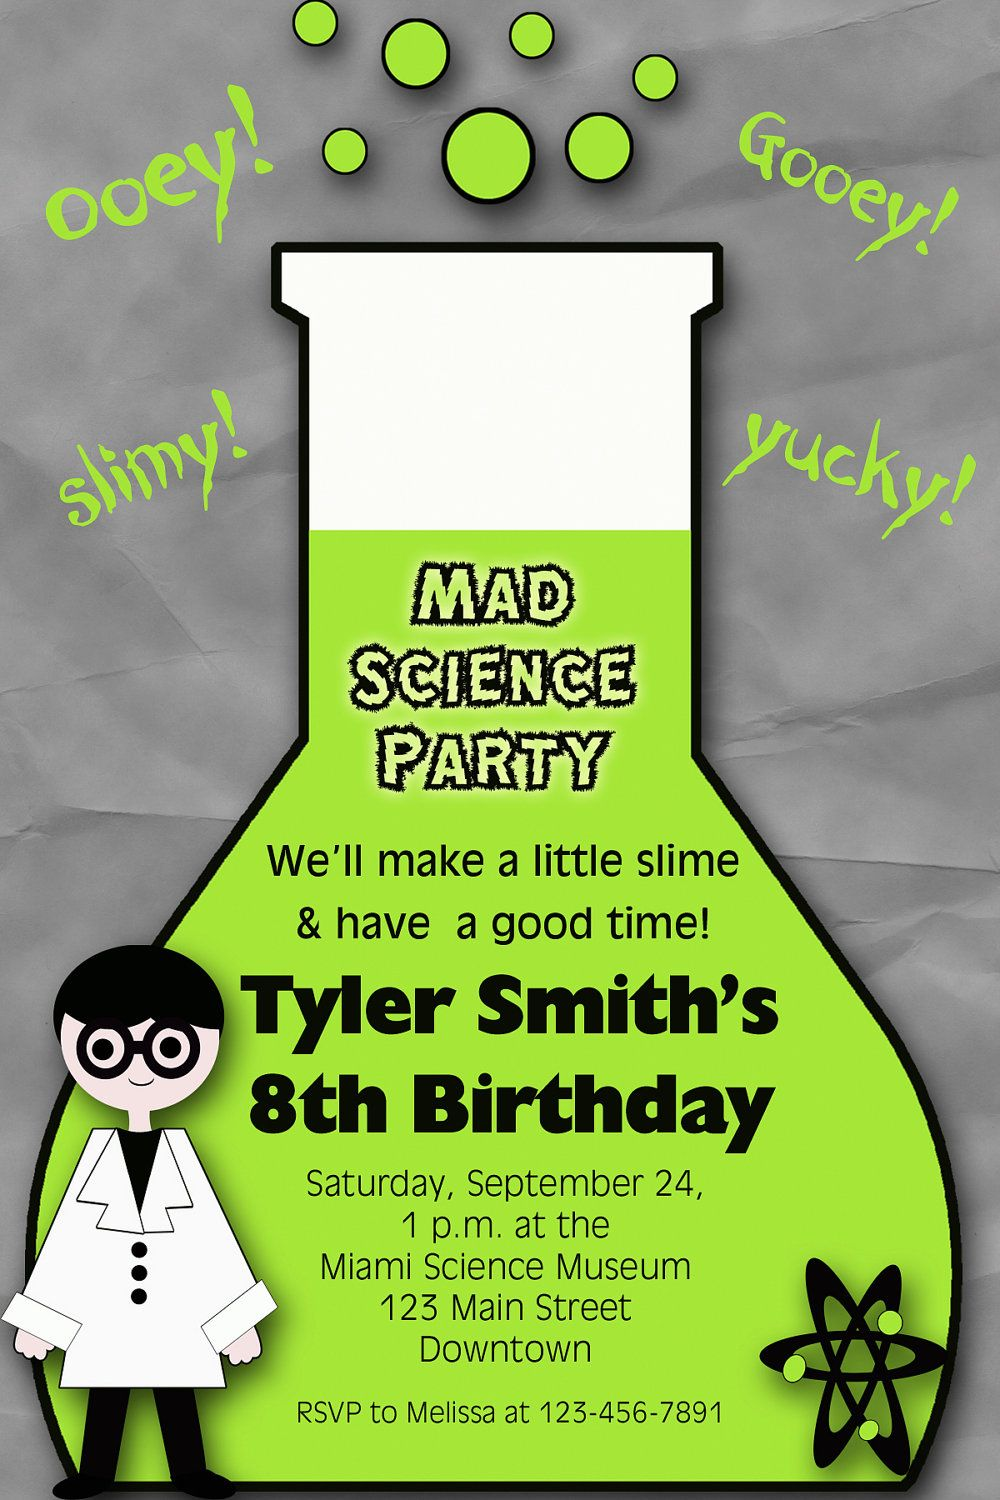 Science birthday paty invitation - mad science party museum ...